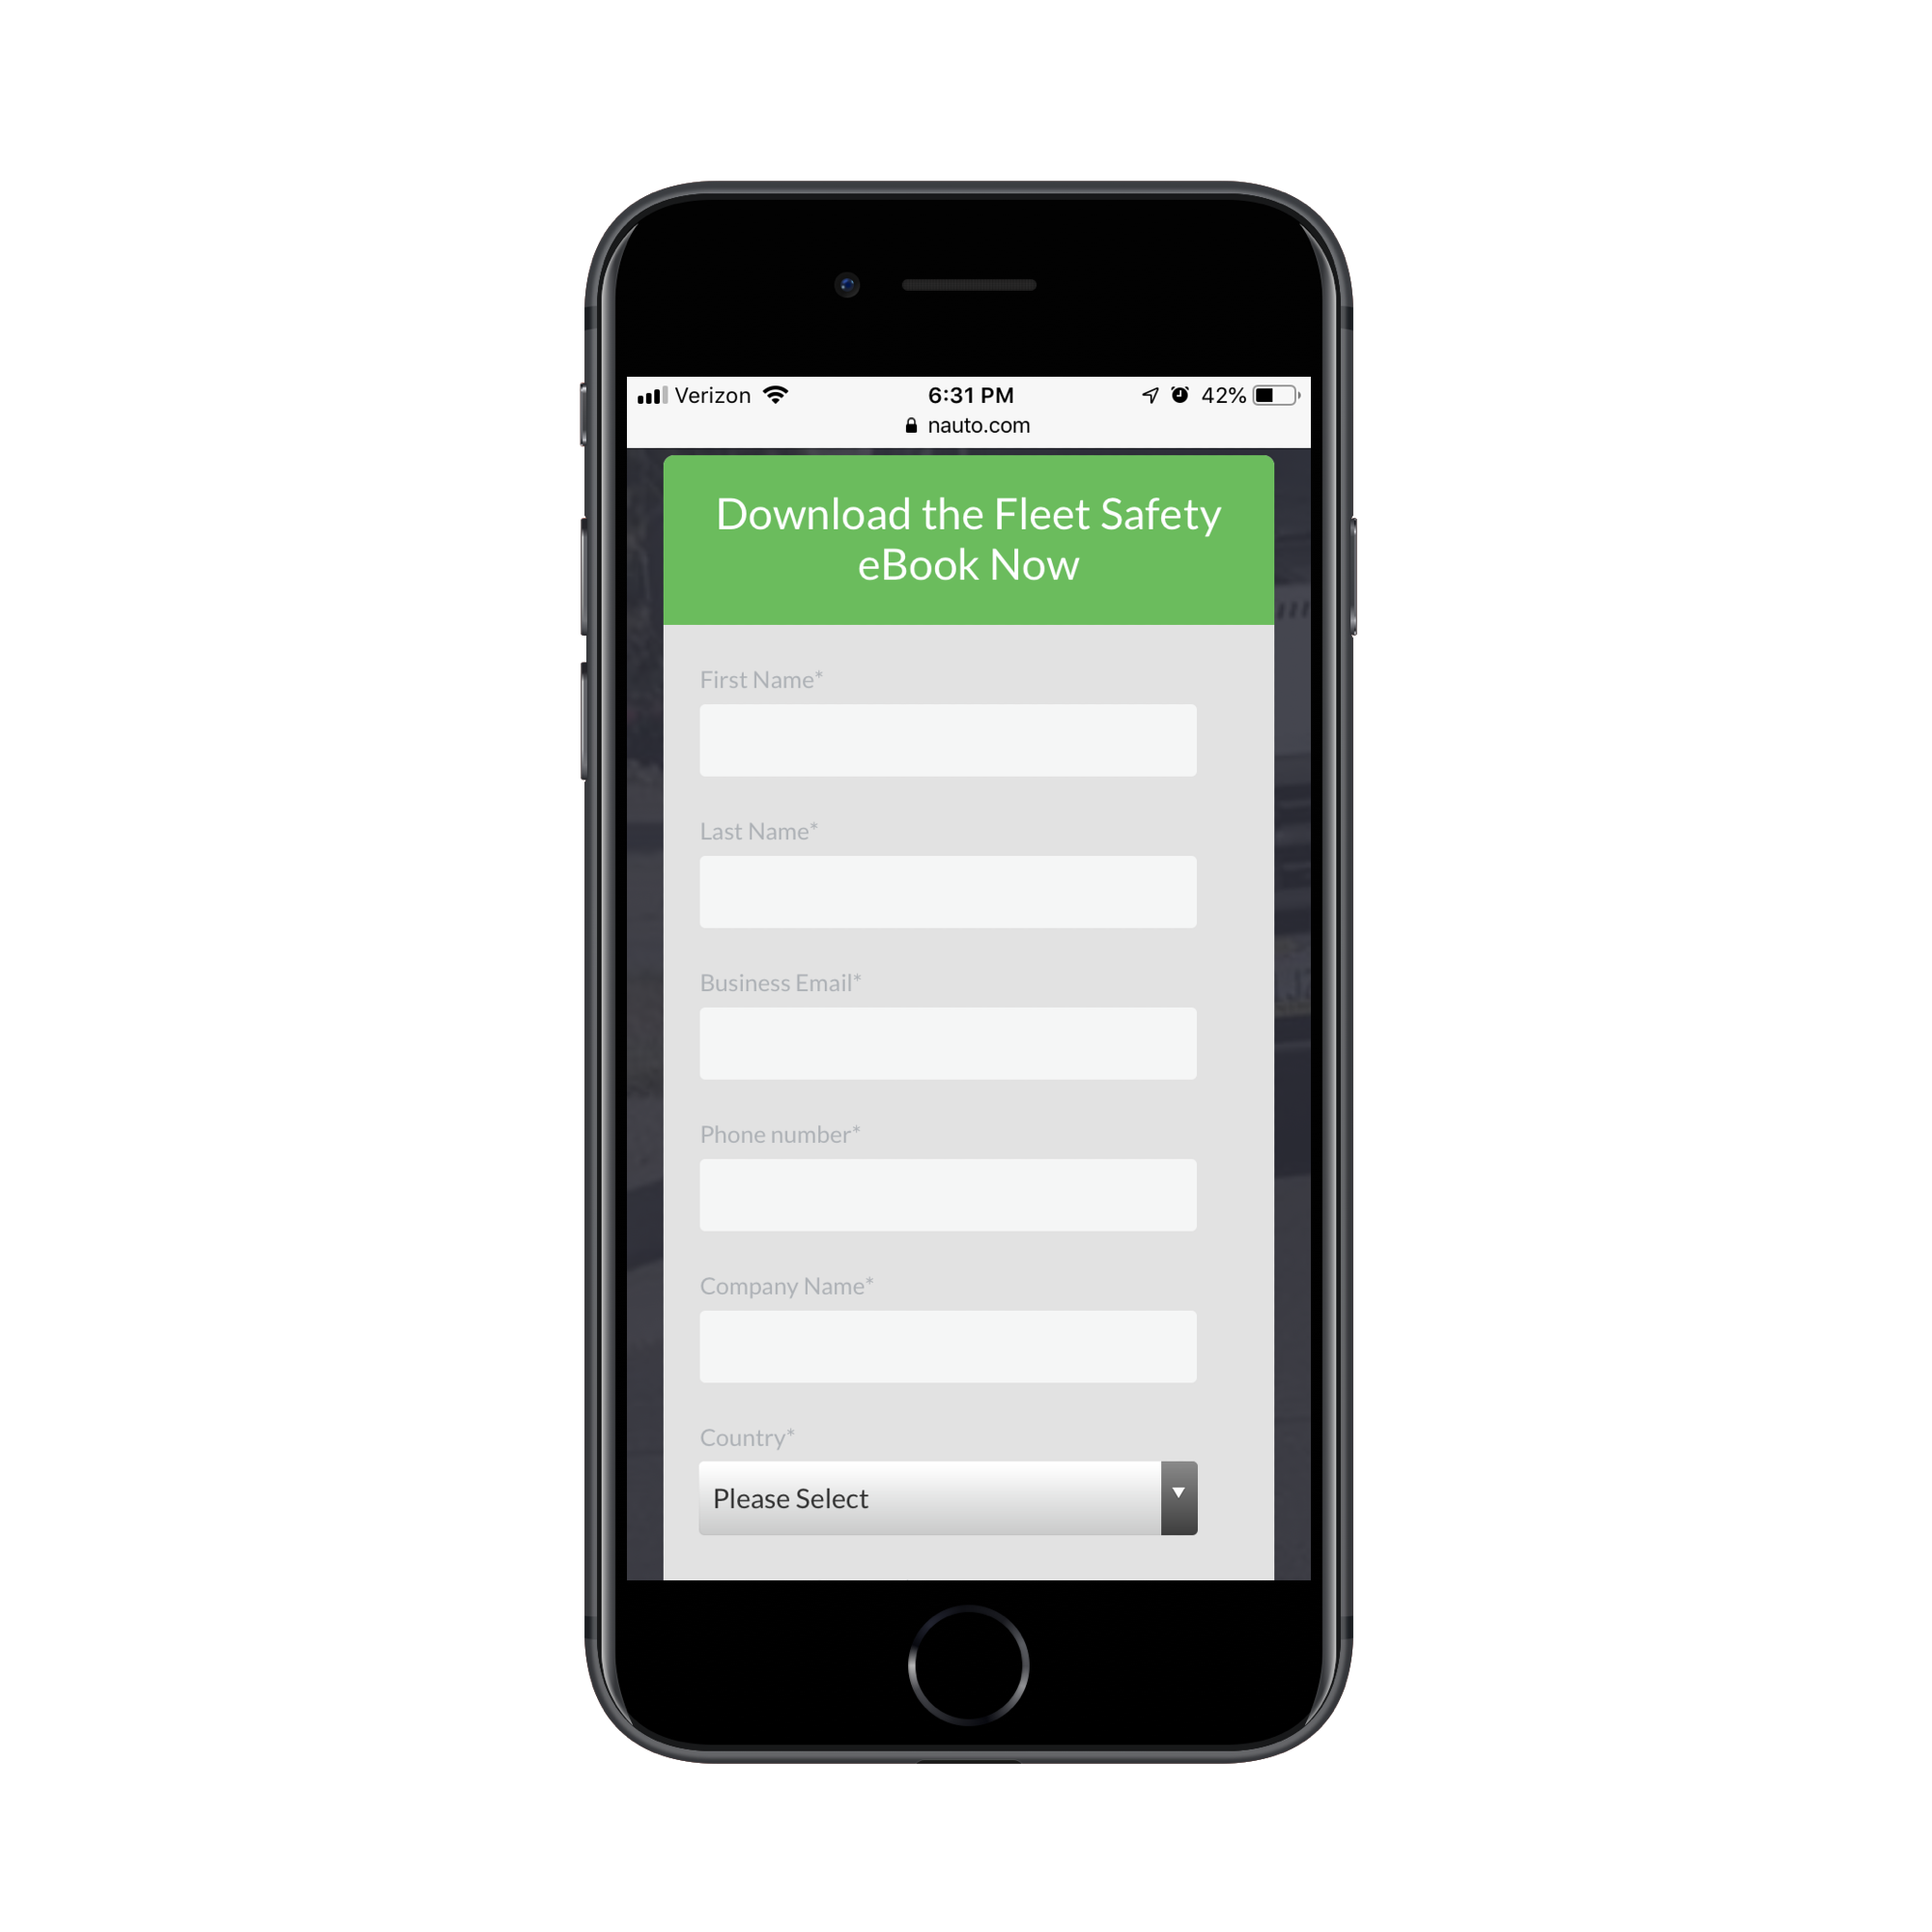 Design A Lead Gen Landing Page For Mobile That Converts